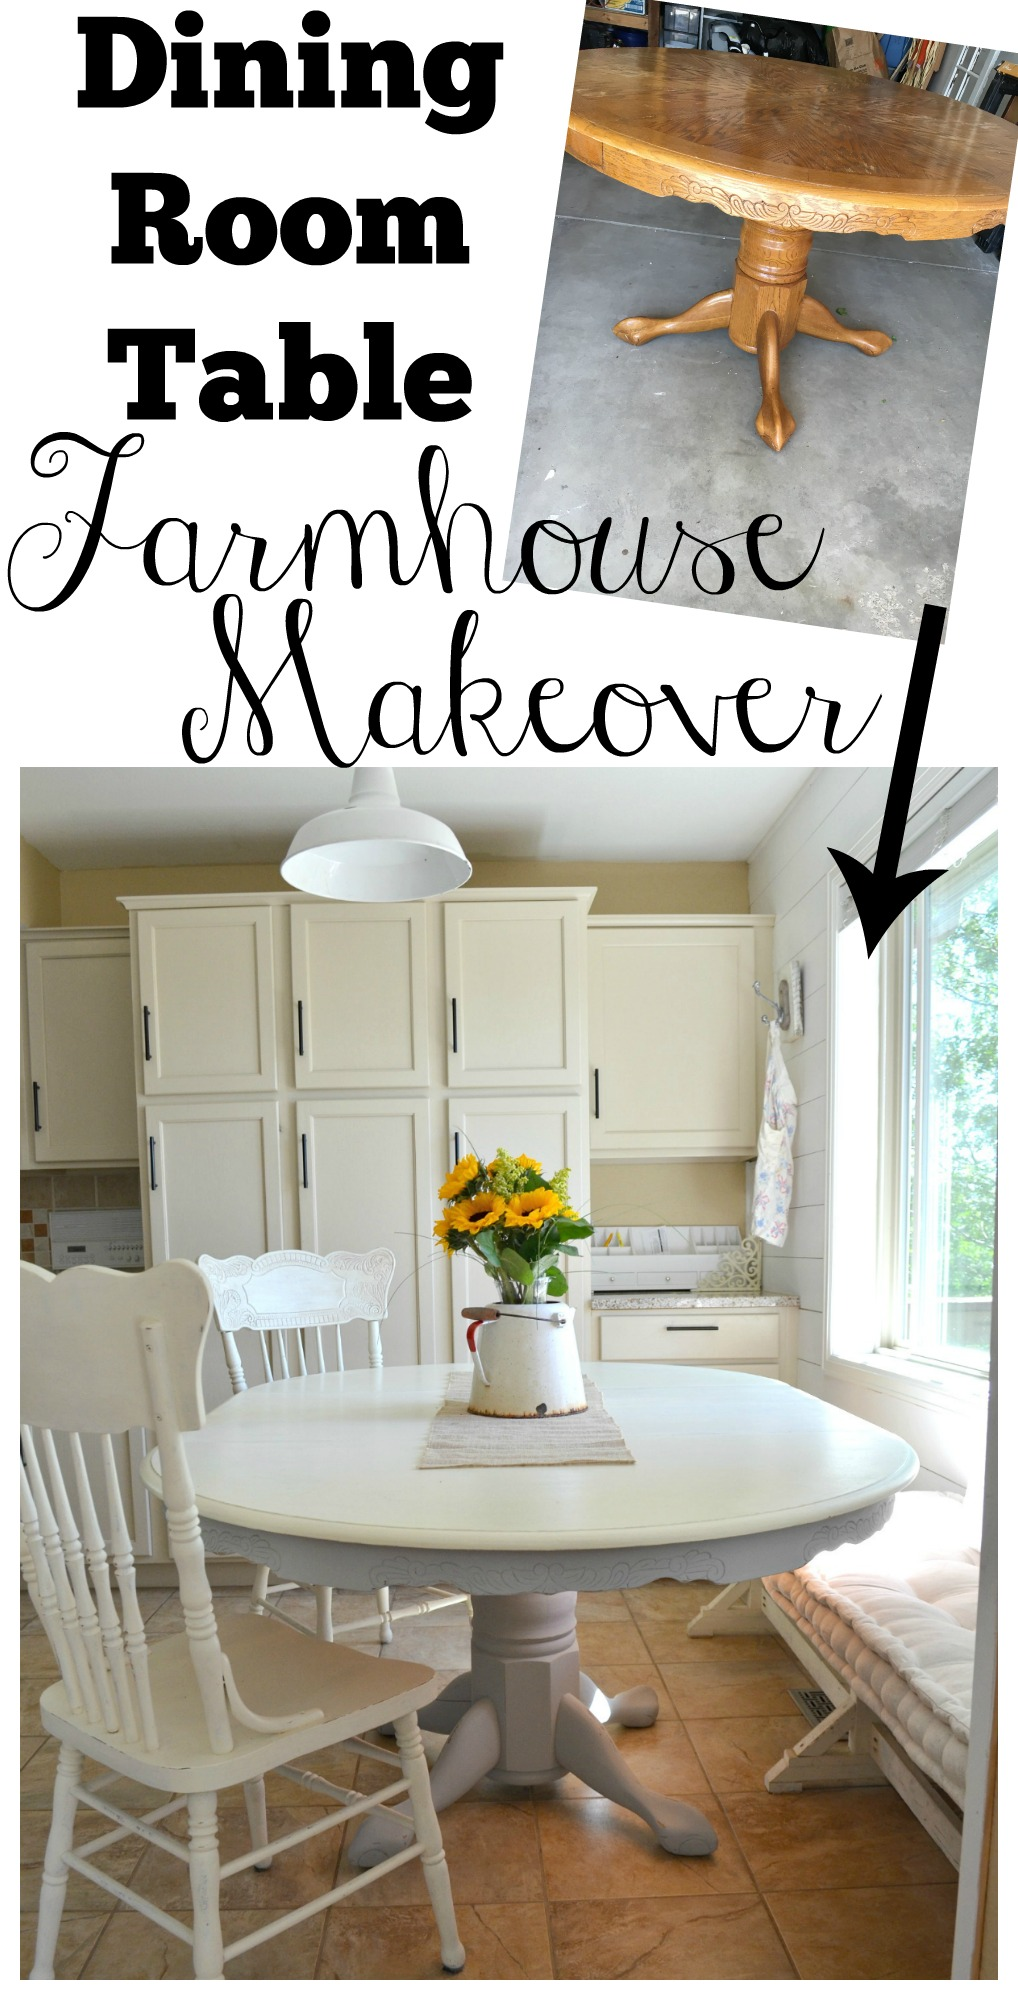 Diy dining table makeover - Dining Room Table Farmhouse Makeover